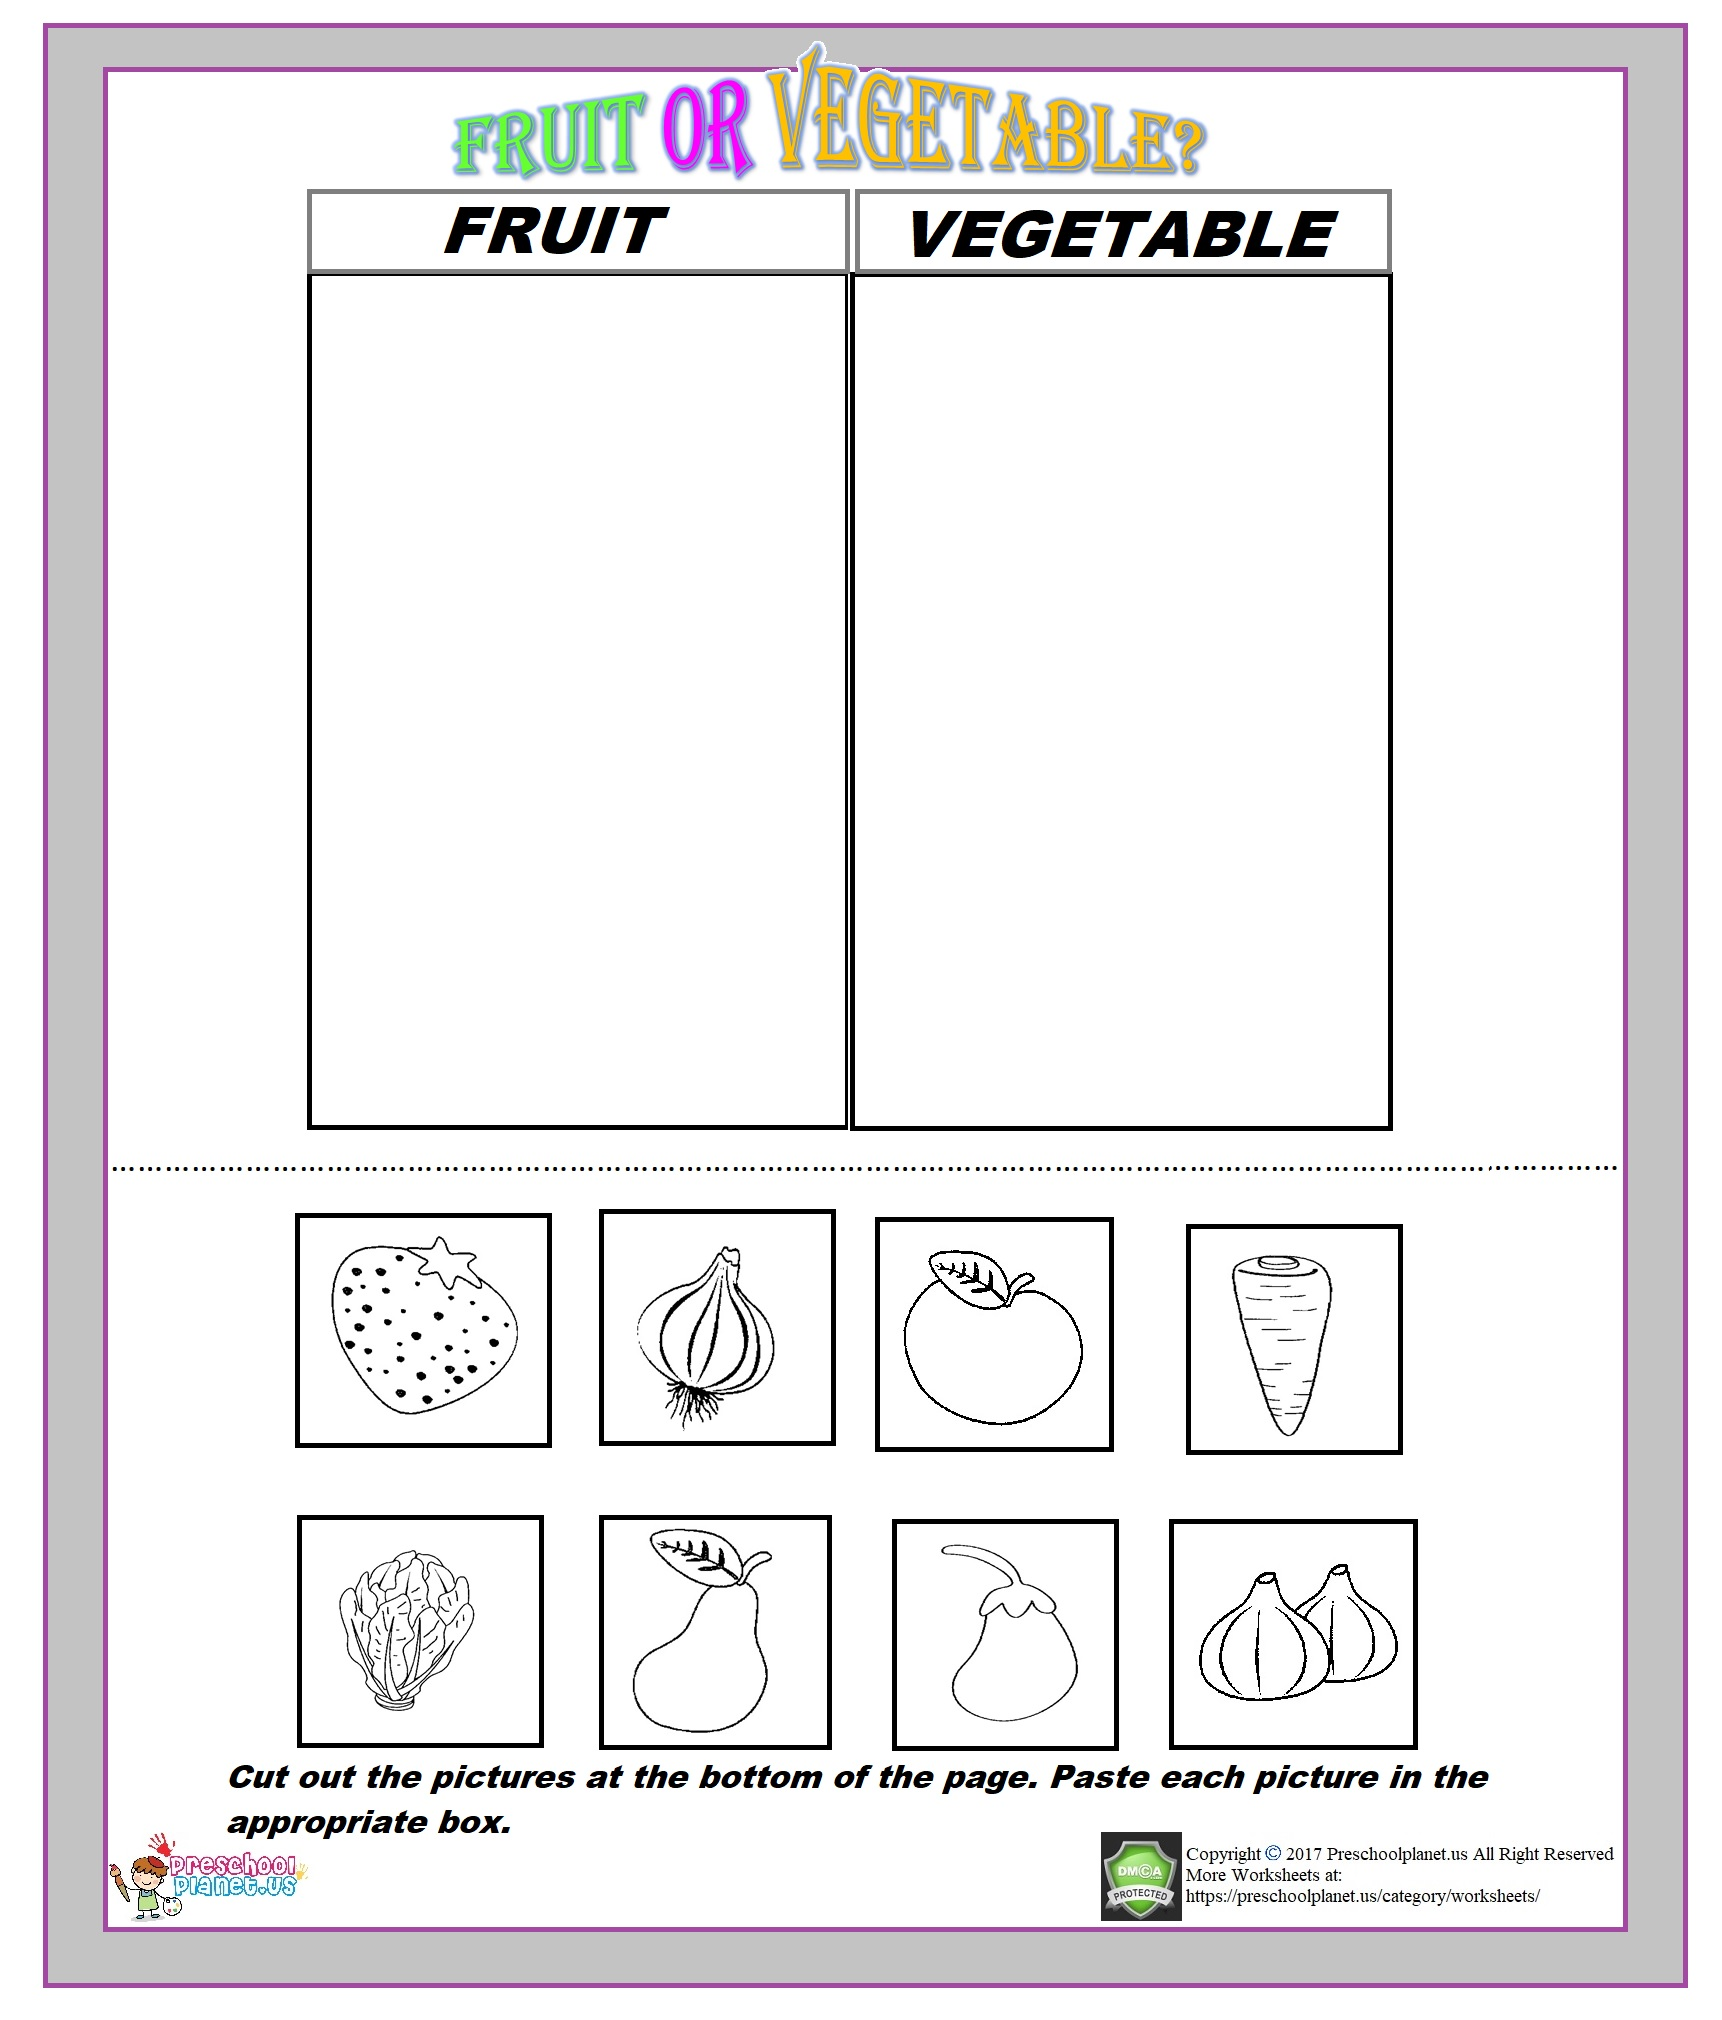 fruit vegetable worksheet for kids